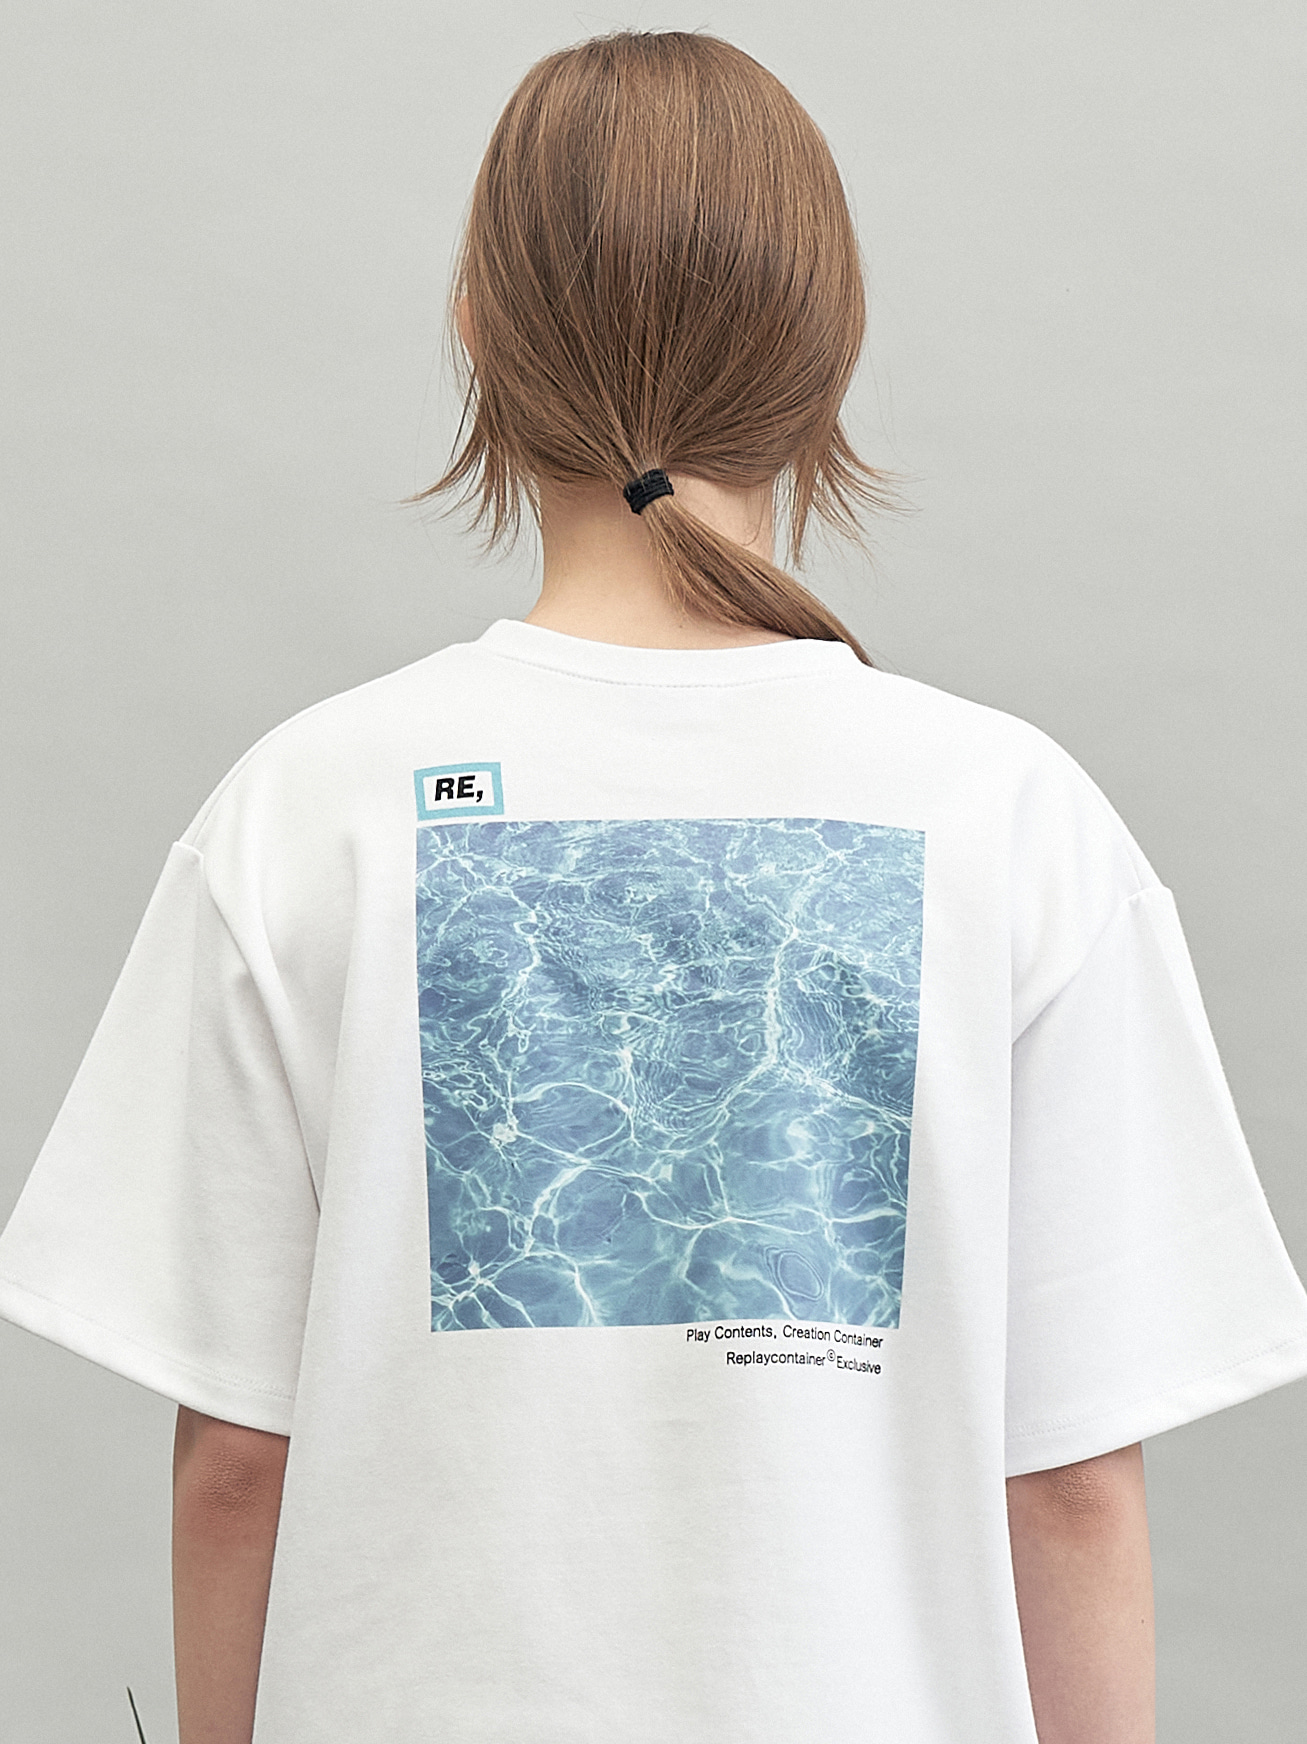 RE square campaign half tee (wave)